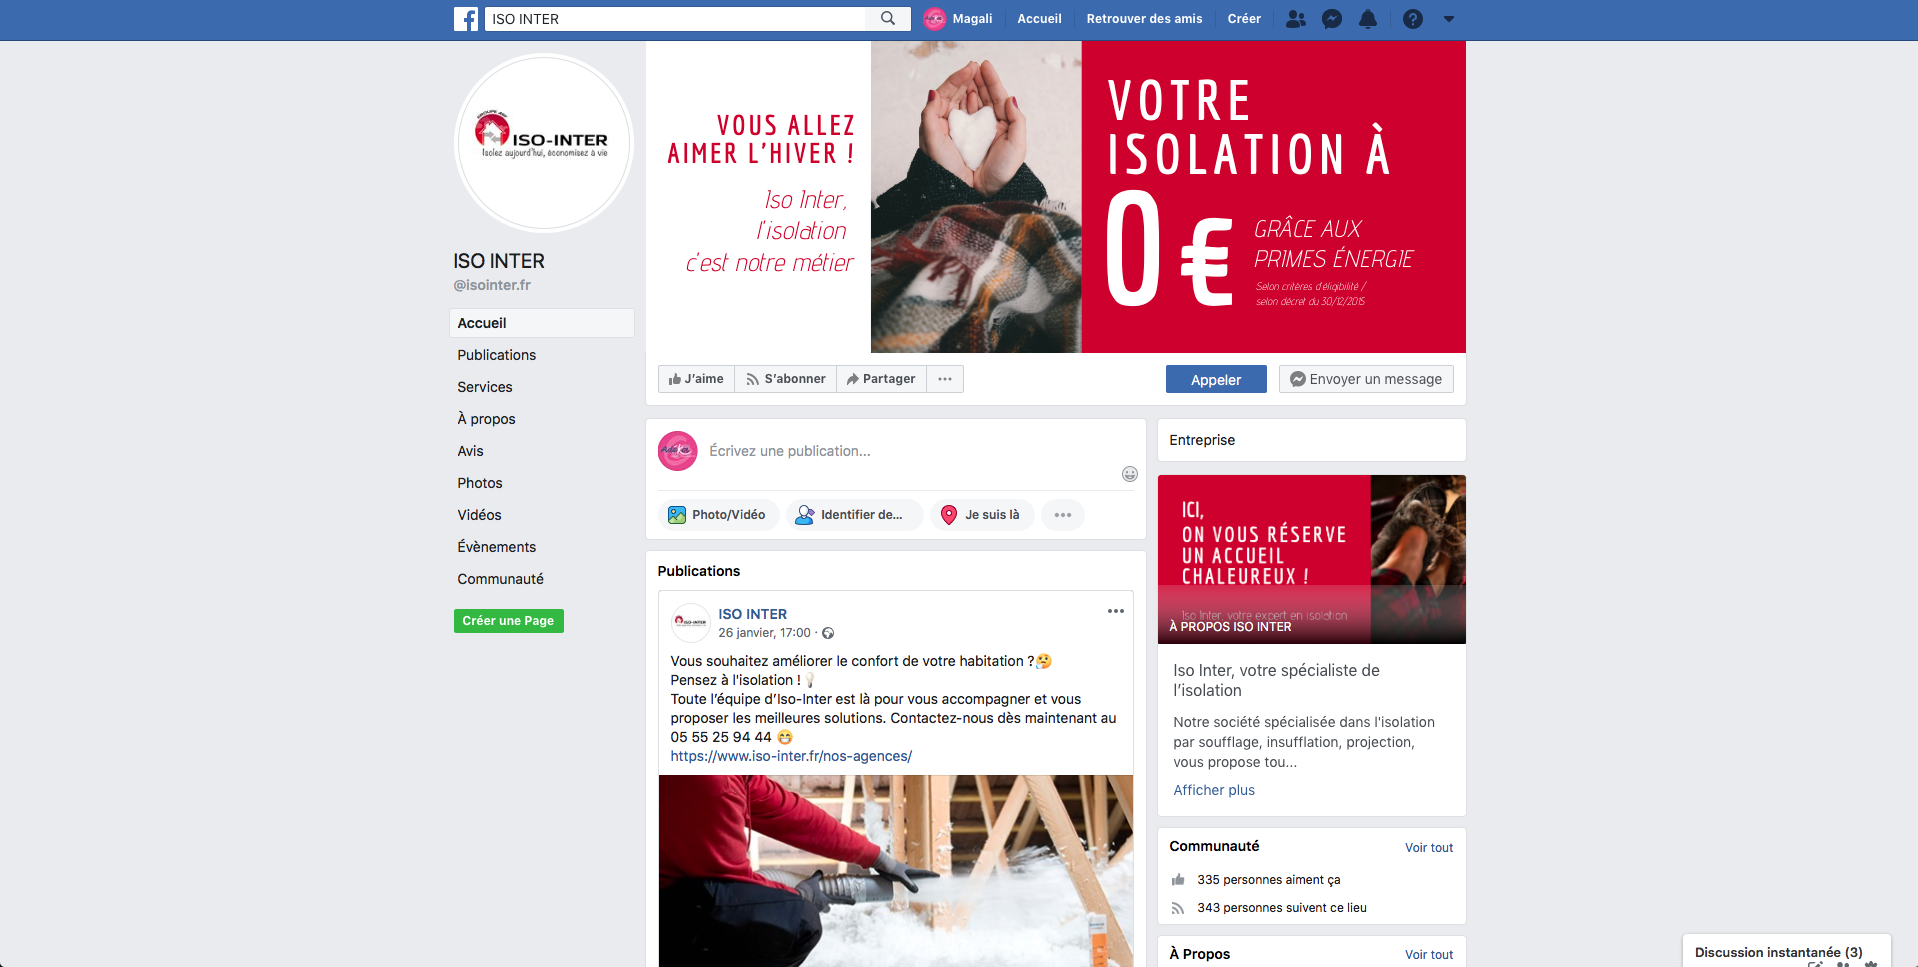 animation-facebook-isolation-groupe-abf-perigueux